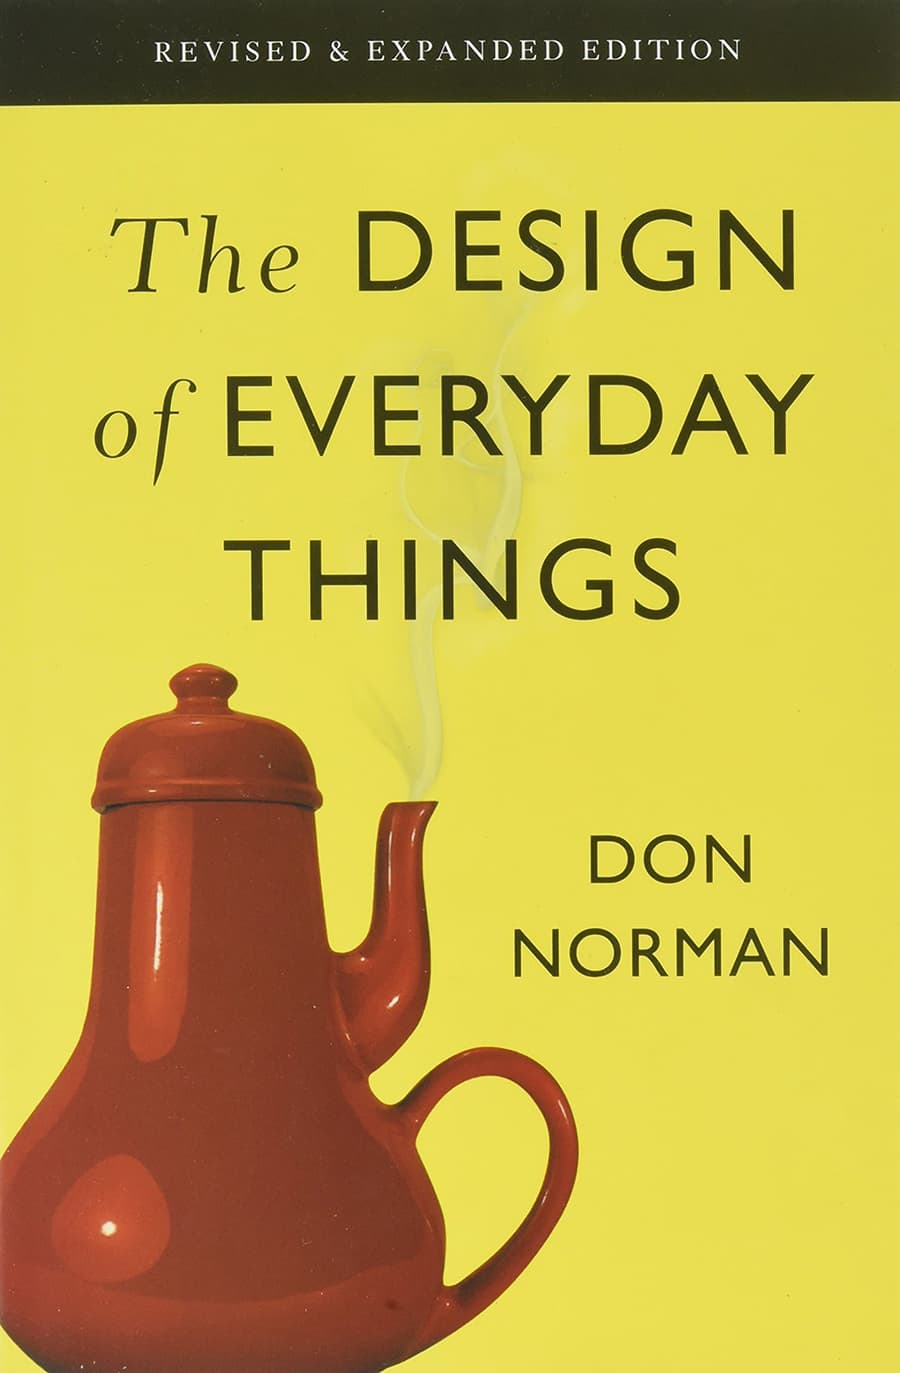 The cover of The Design of Everyday Things